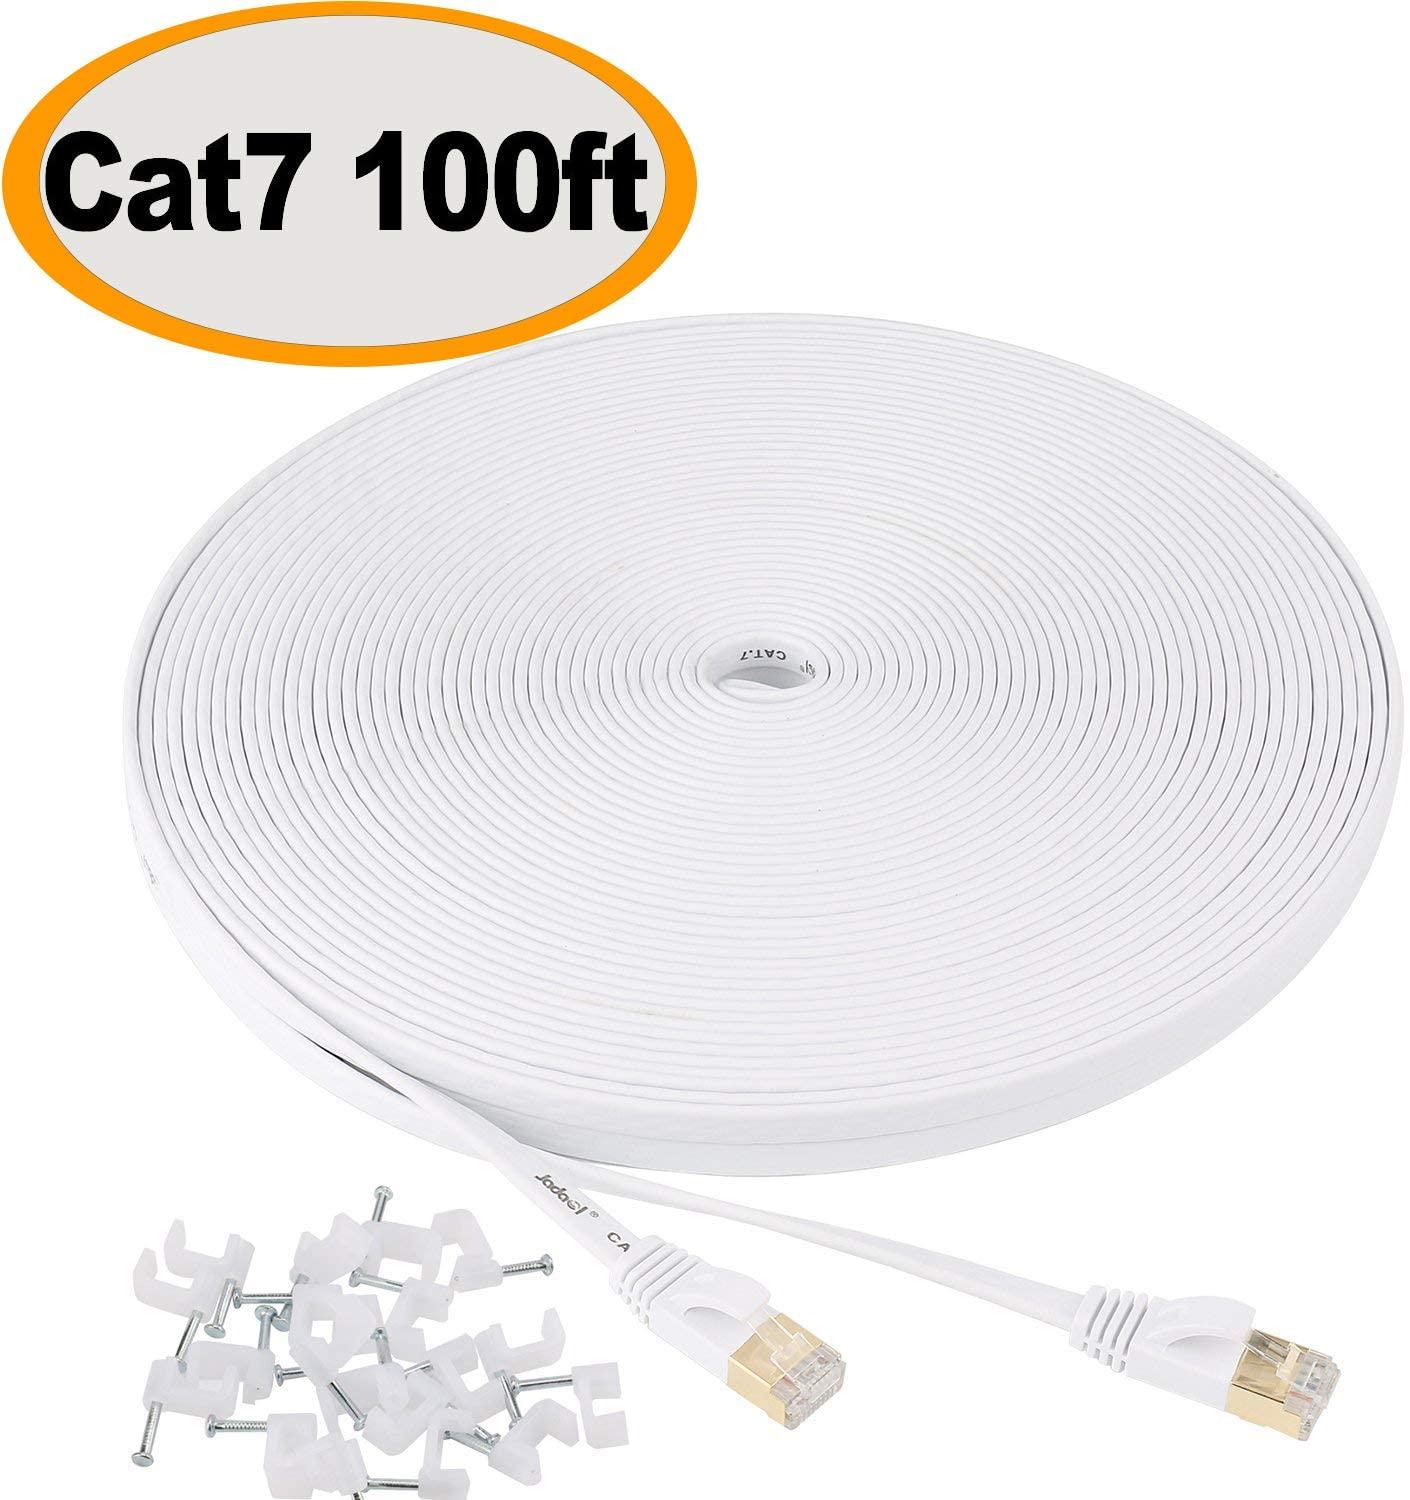 Jadaol Cat 7 Ethernet Cable